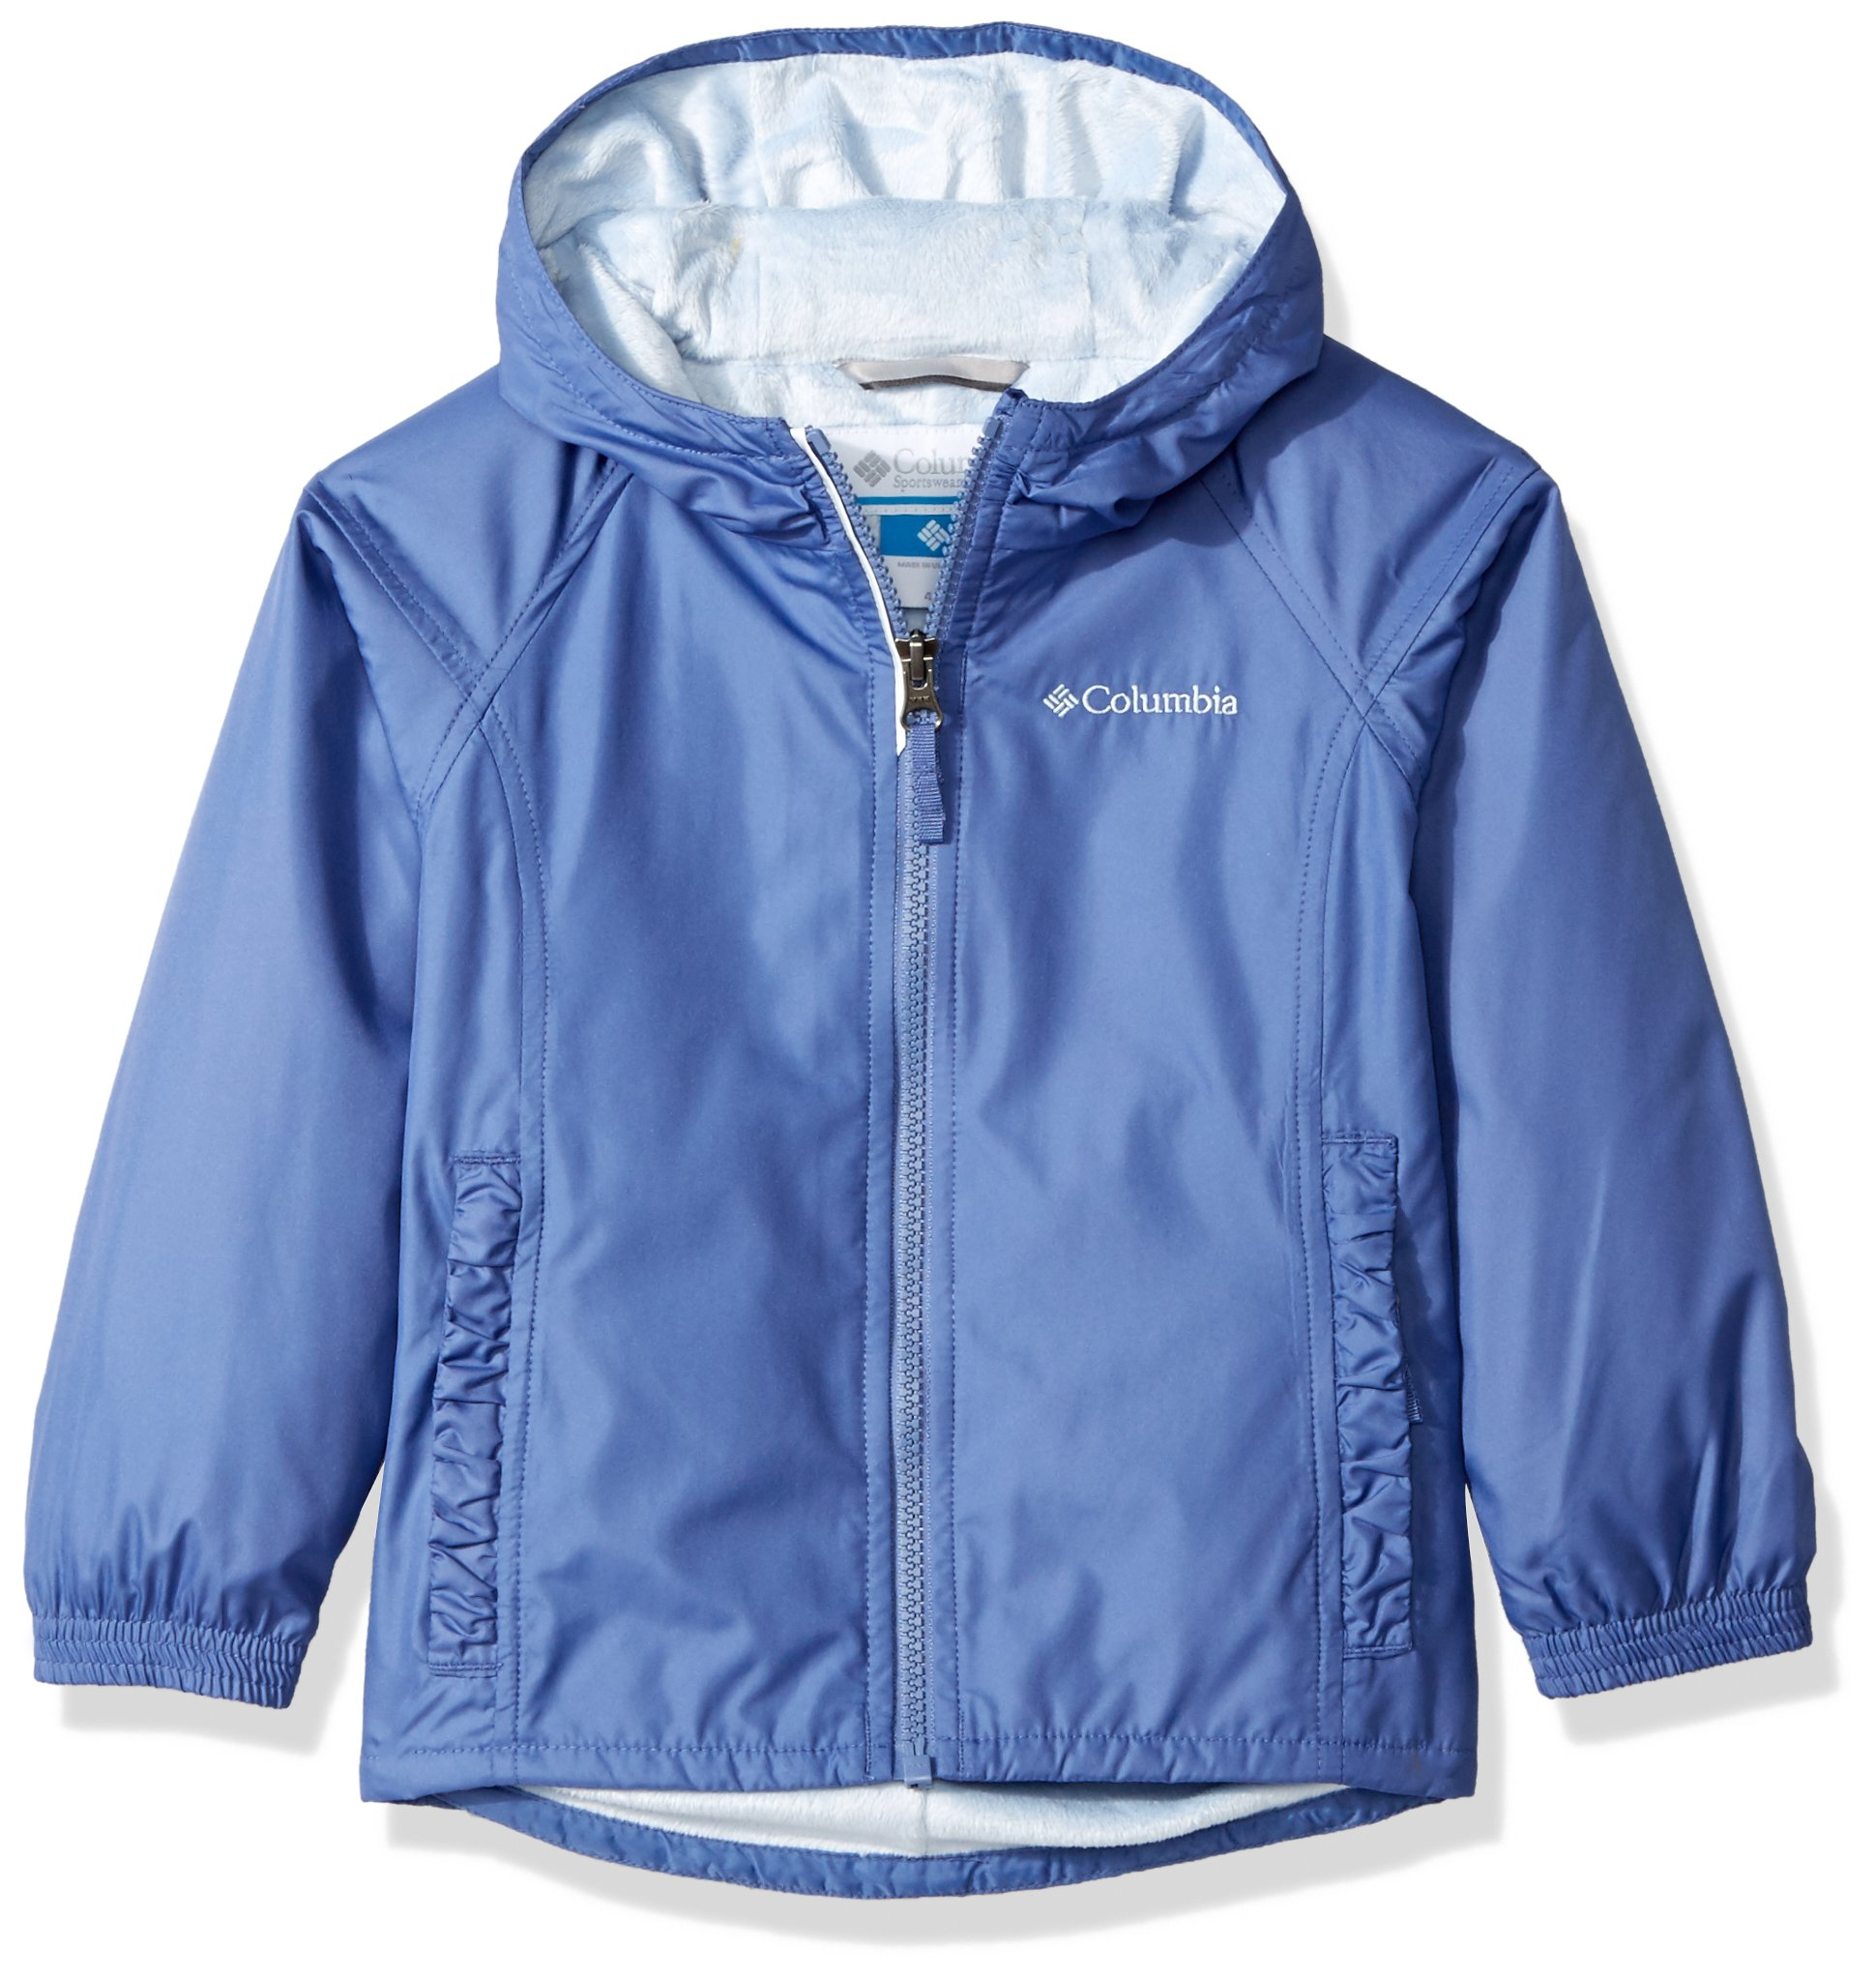 Columbia Girls' Toddler Boys' Ethan Pond Jacket, Eve, 4T